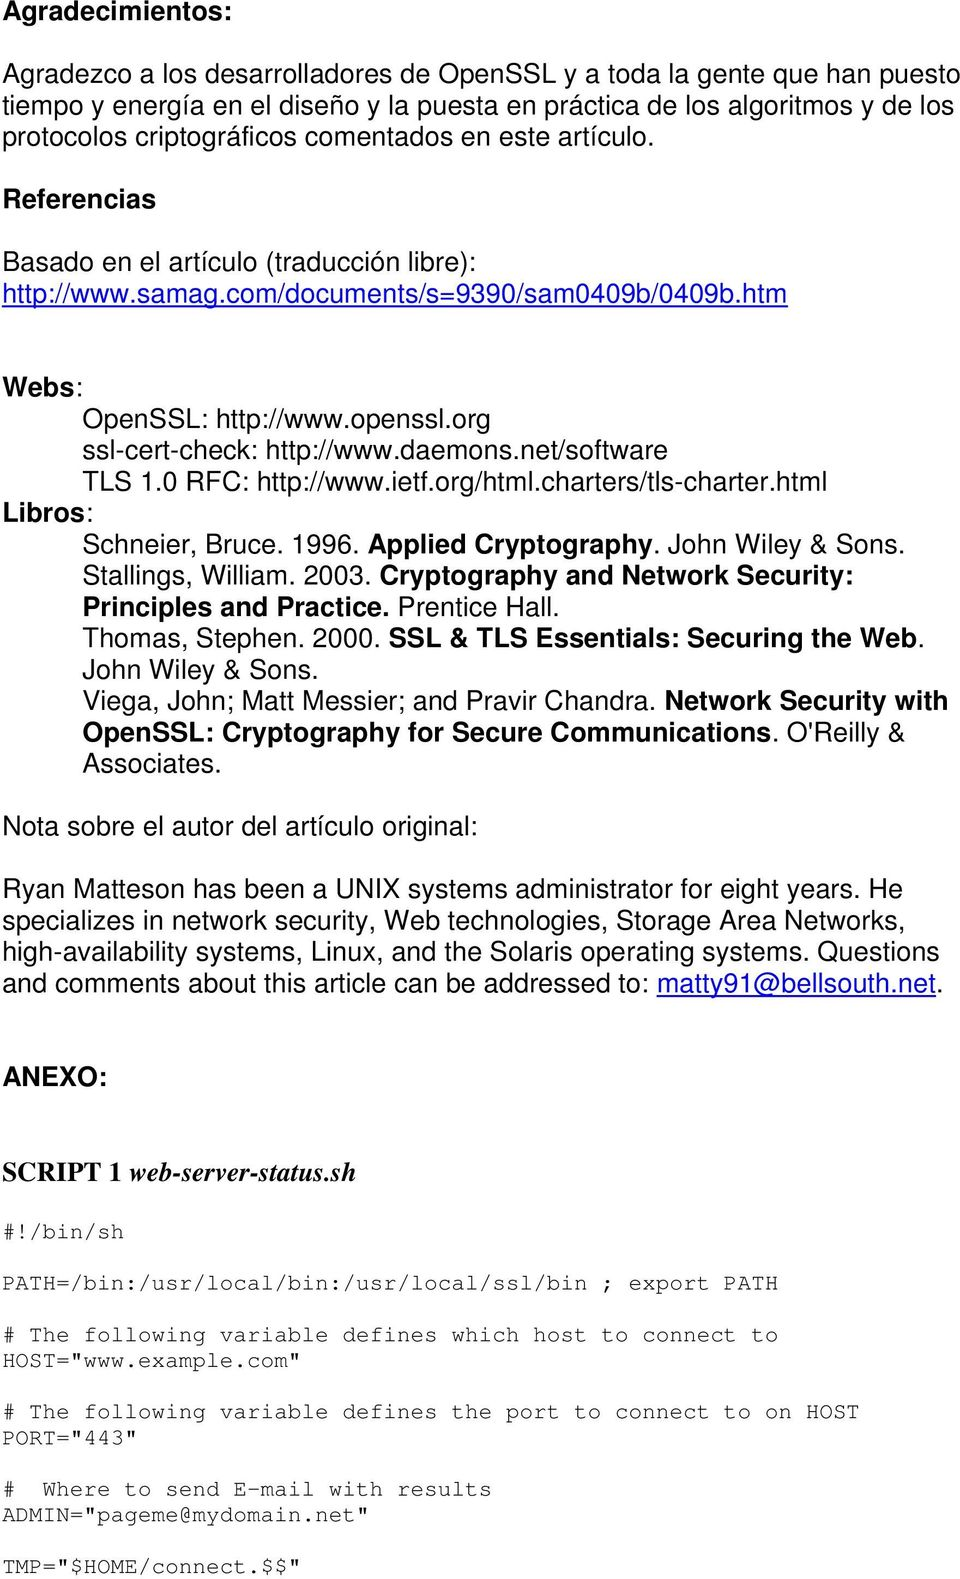 org ssl-cert-check: http://www.daemons.net/software TLS 1.0 RFC: http://www.ietf.org/html.charters/tls-charter.html Libros: Schneier, Bruce. 1996. Applied Cryptography. John Wiley & Sons.